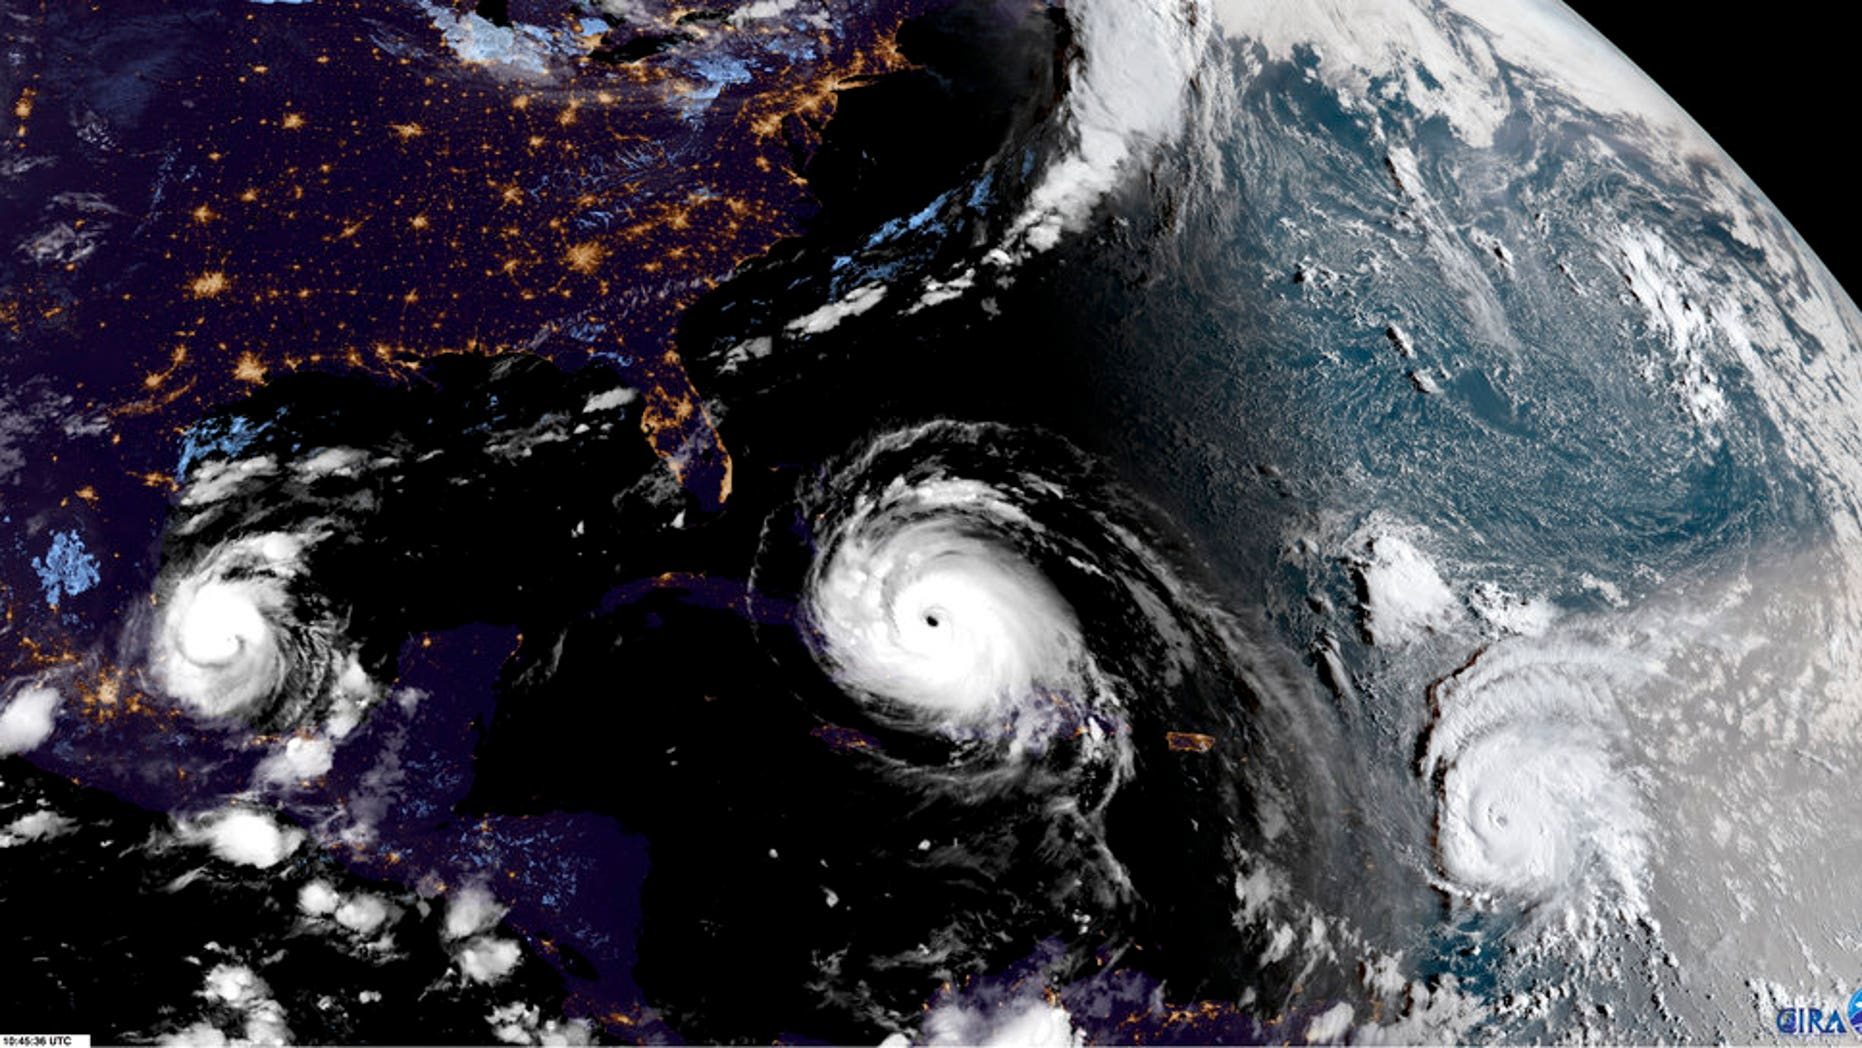 Satellite image on Friday showed Hurricane Irma (center) with Hurricane Katia (left) and Hurricane Jose (right) in the Atlantic Ocean.